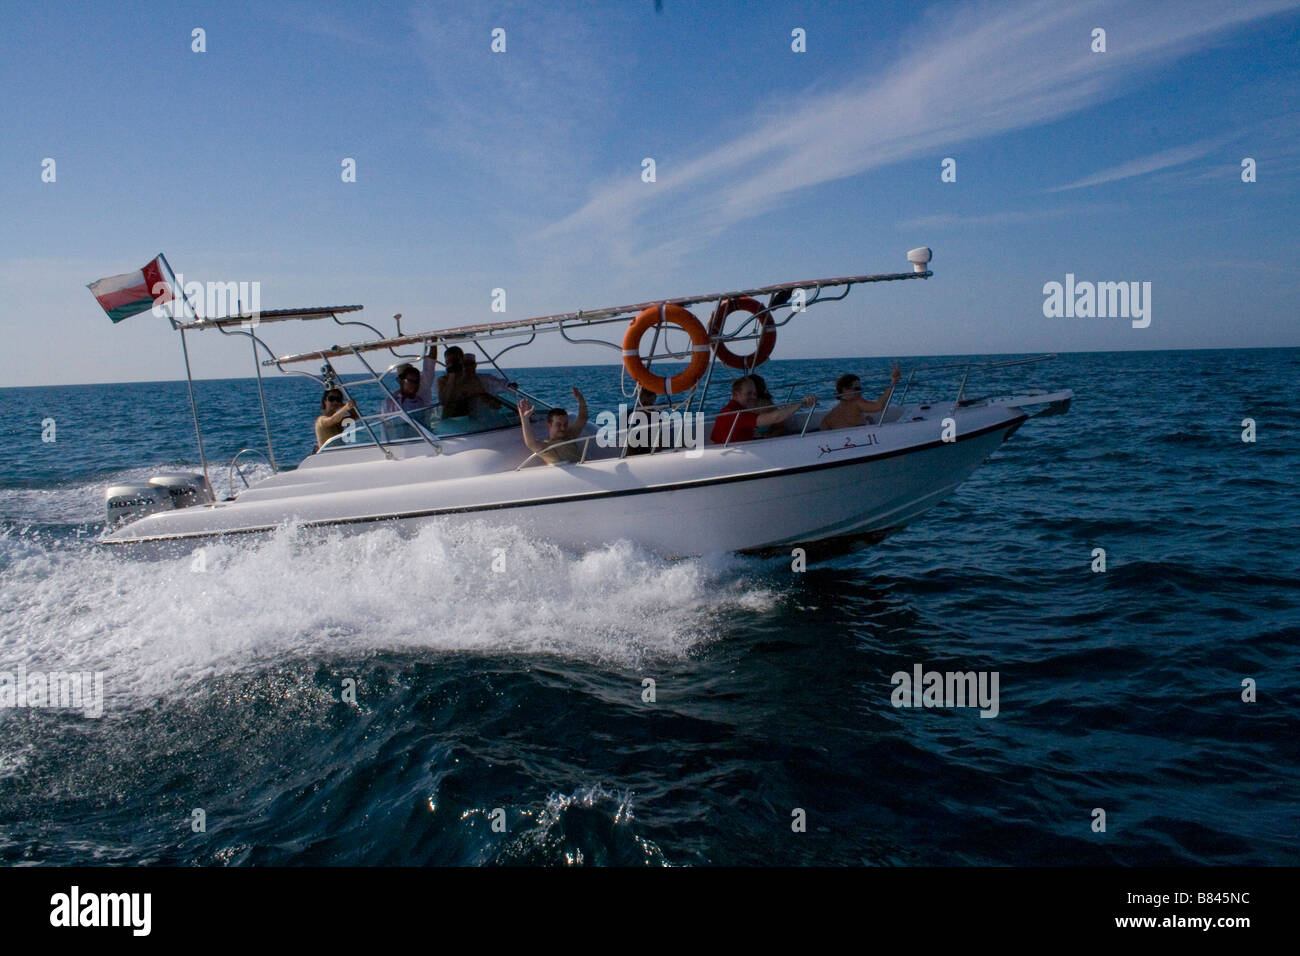 Diving boat in the Bay of Oman close to Muscat the capital of the Sultanate of Oman - Stock Image